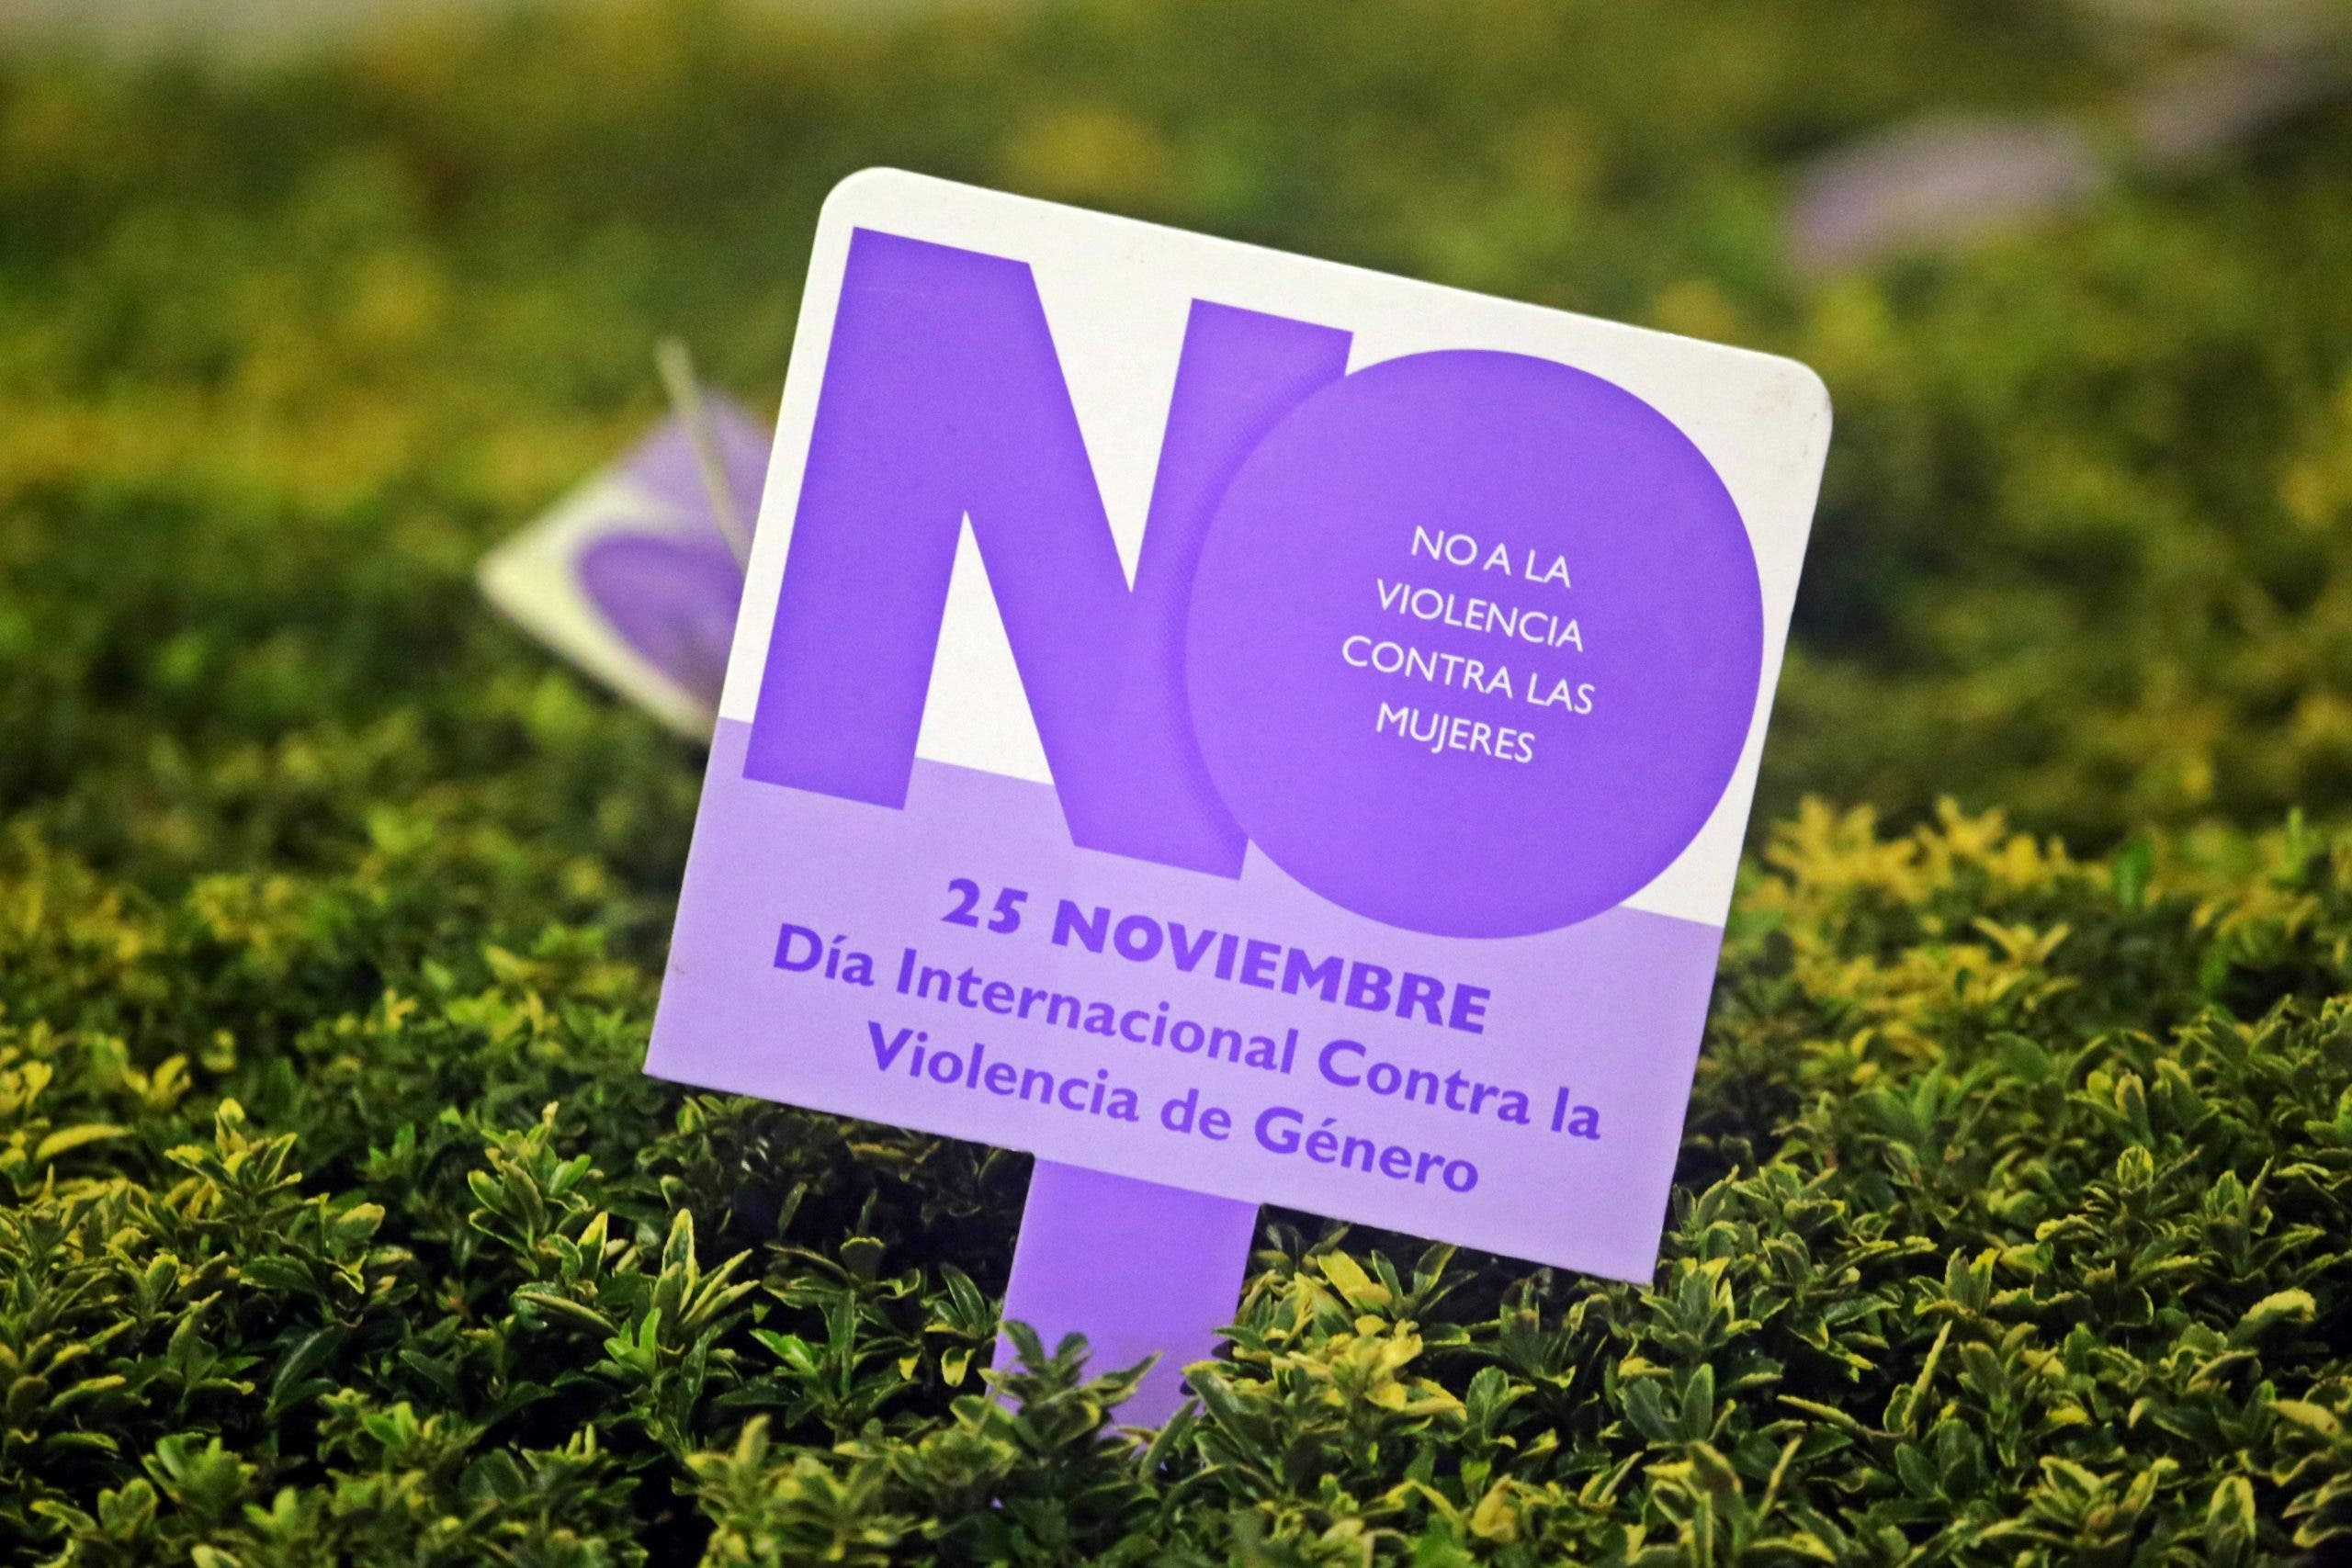 A sign marking International Day for the Elimination of Violence against Women on November 25